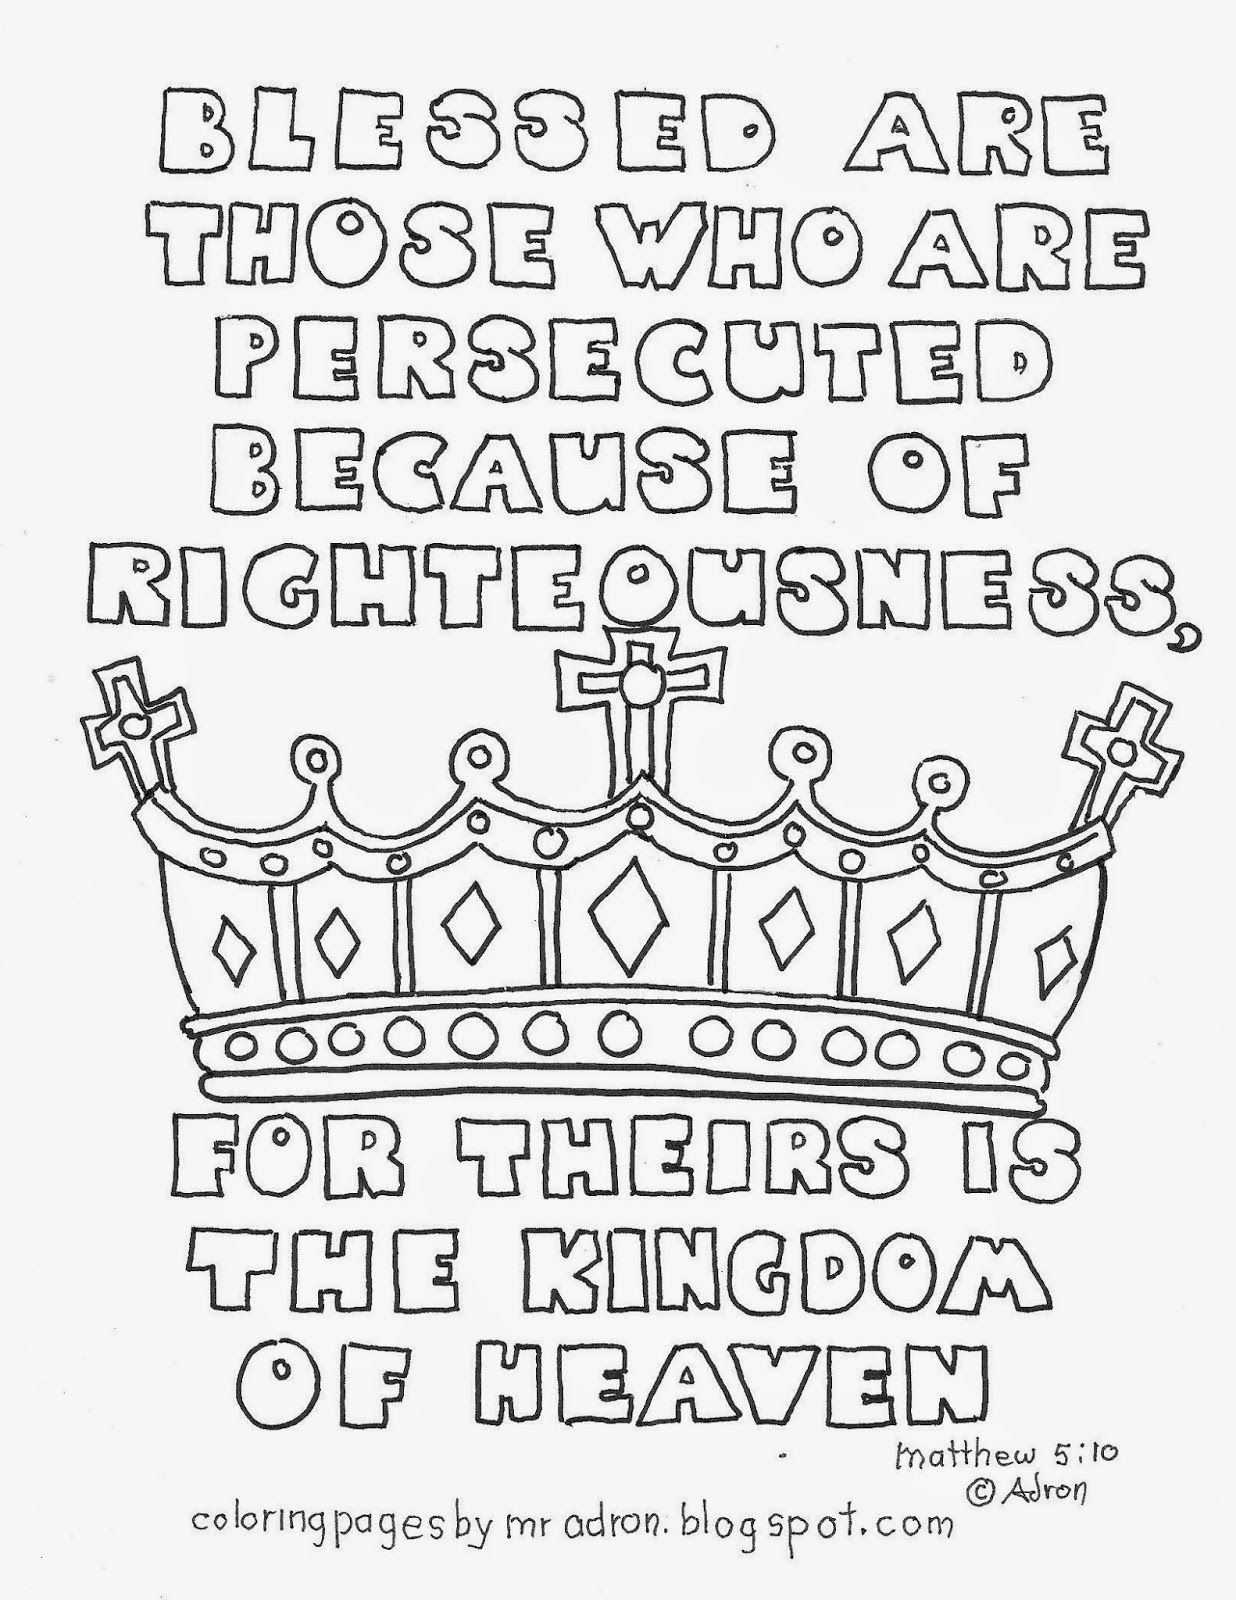 beatitudes coloring pages for children Collection-Beatitudes Coloring Pages Beatitudes Coloring Pages for Children Lovely Printable Matthew 5 10 3-g